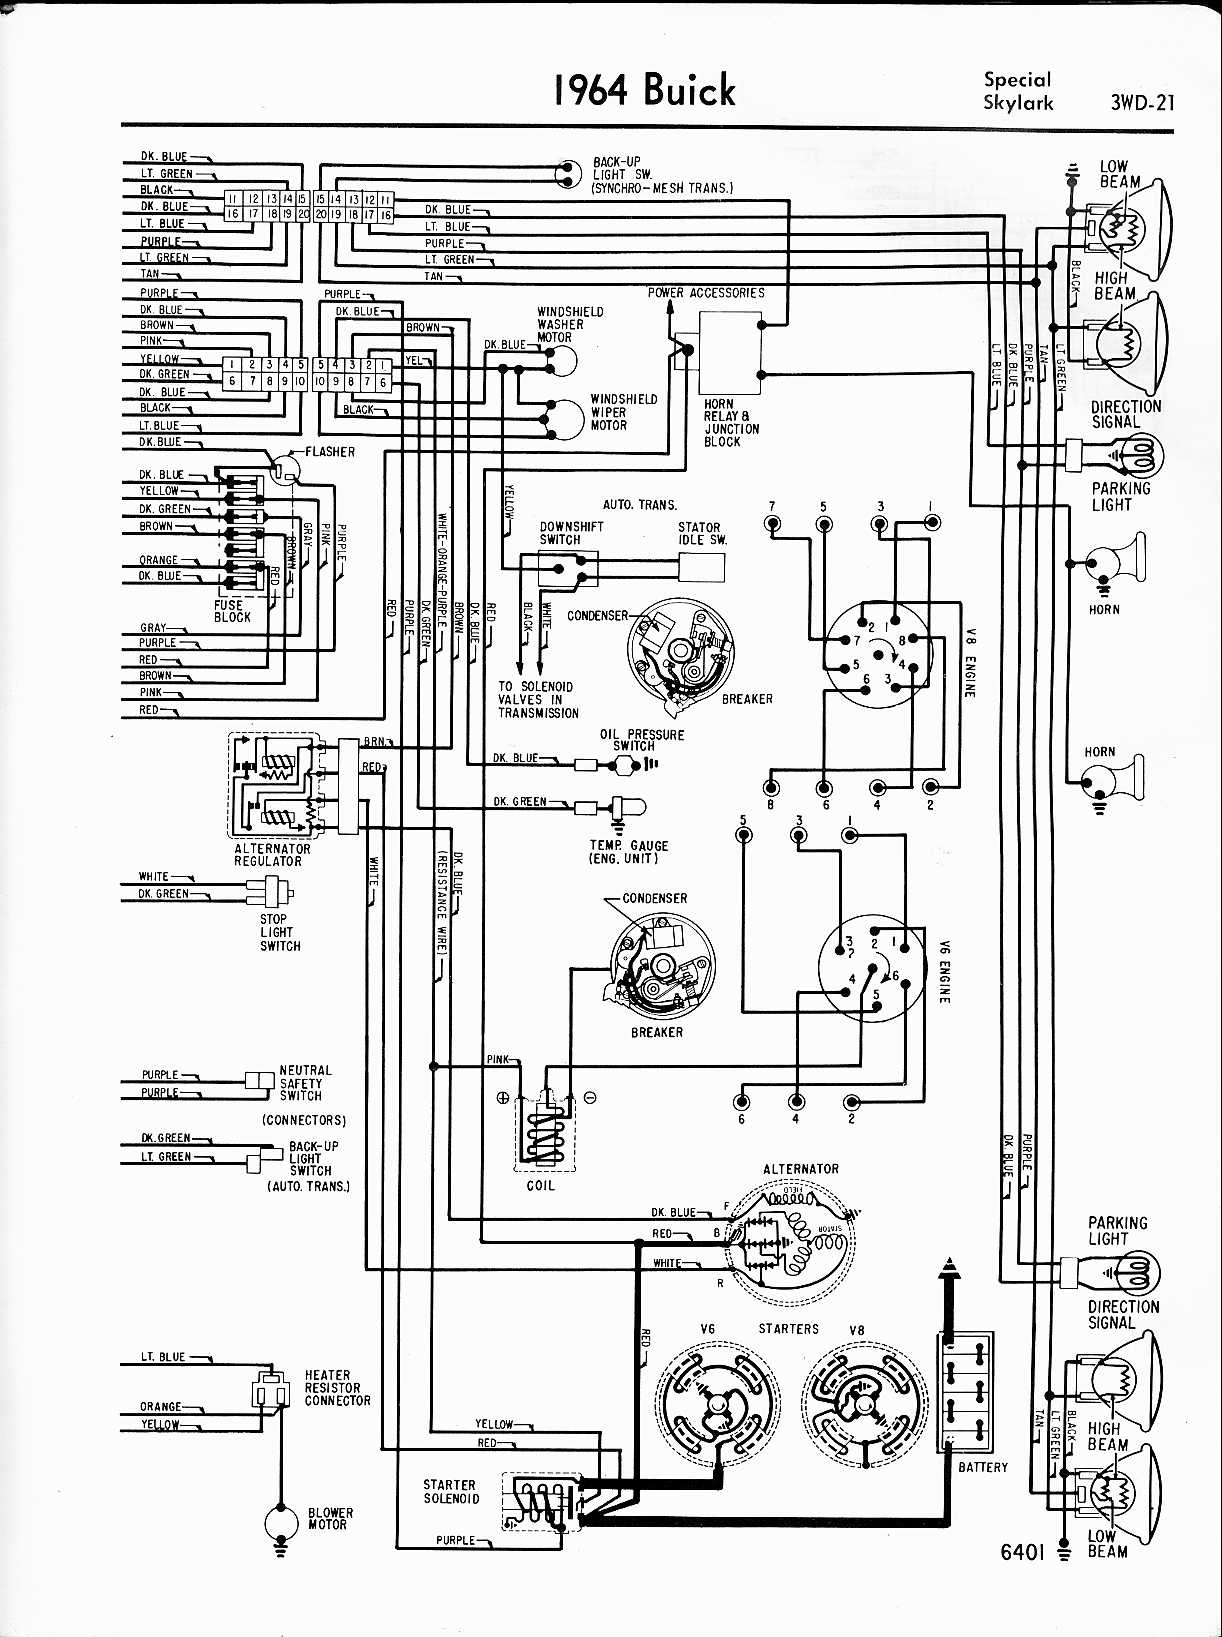 1971 Buick Riviera Fuse Box on 2004 acura tl fuse diagram